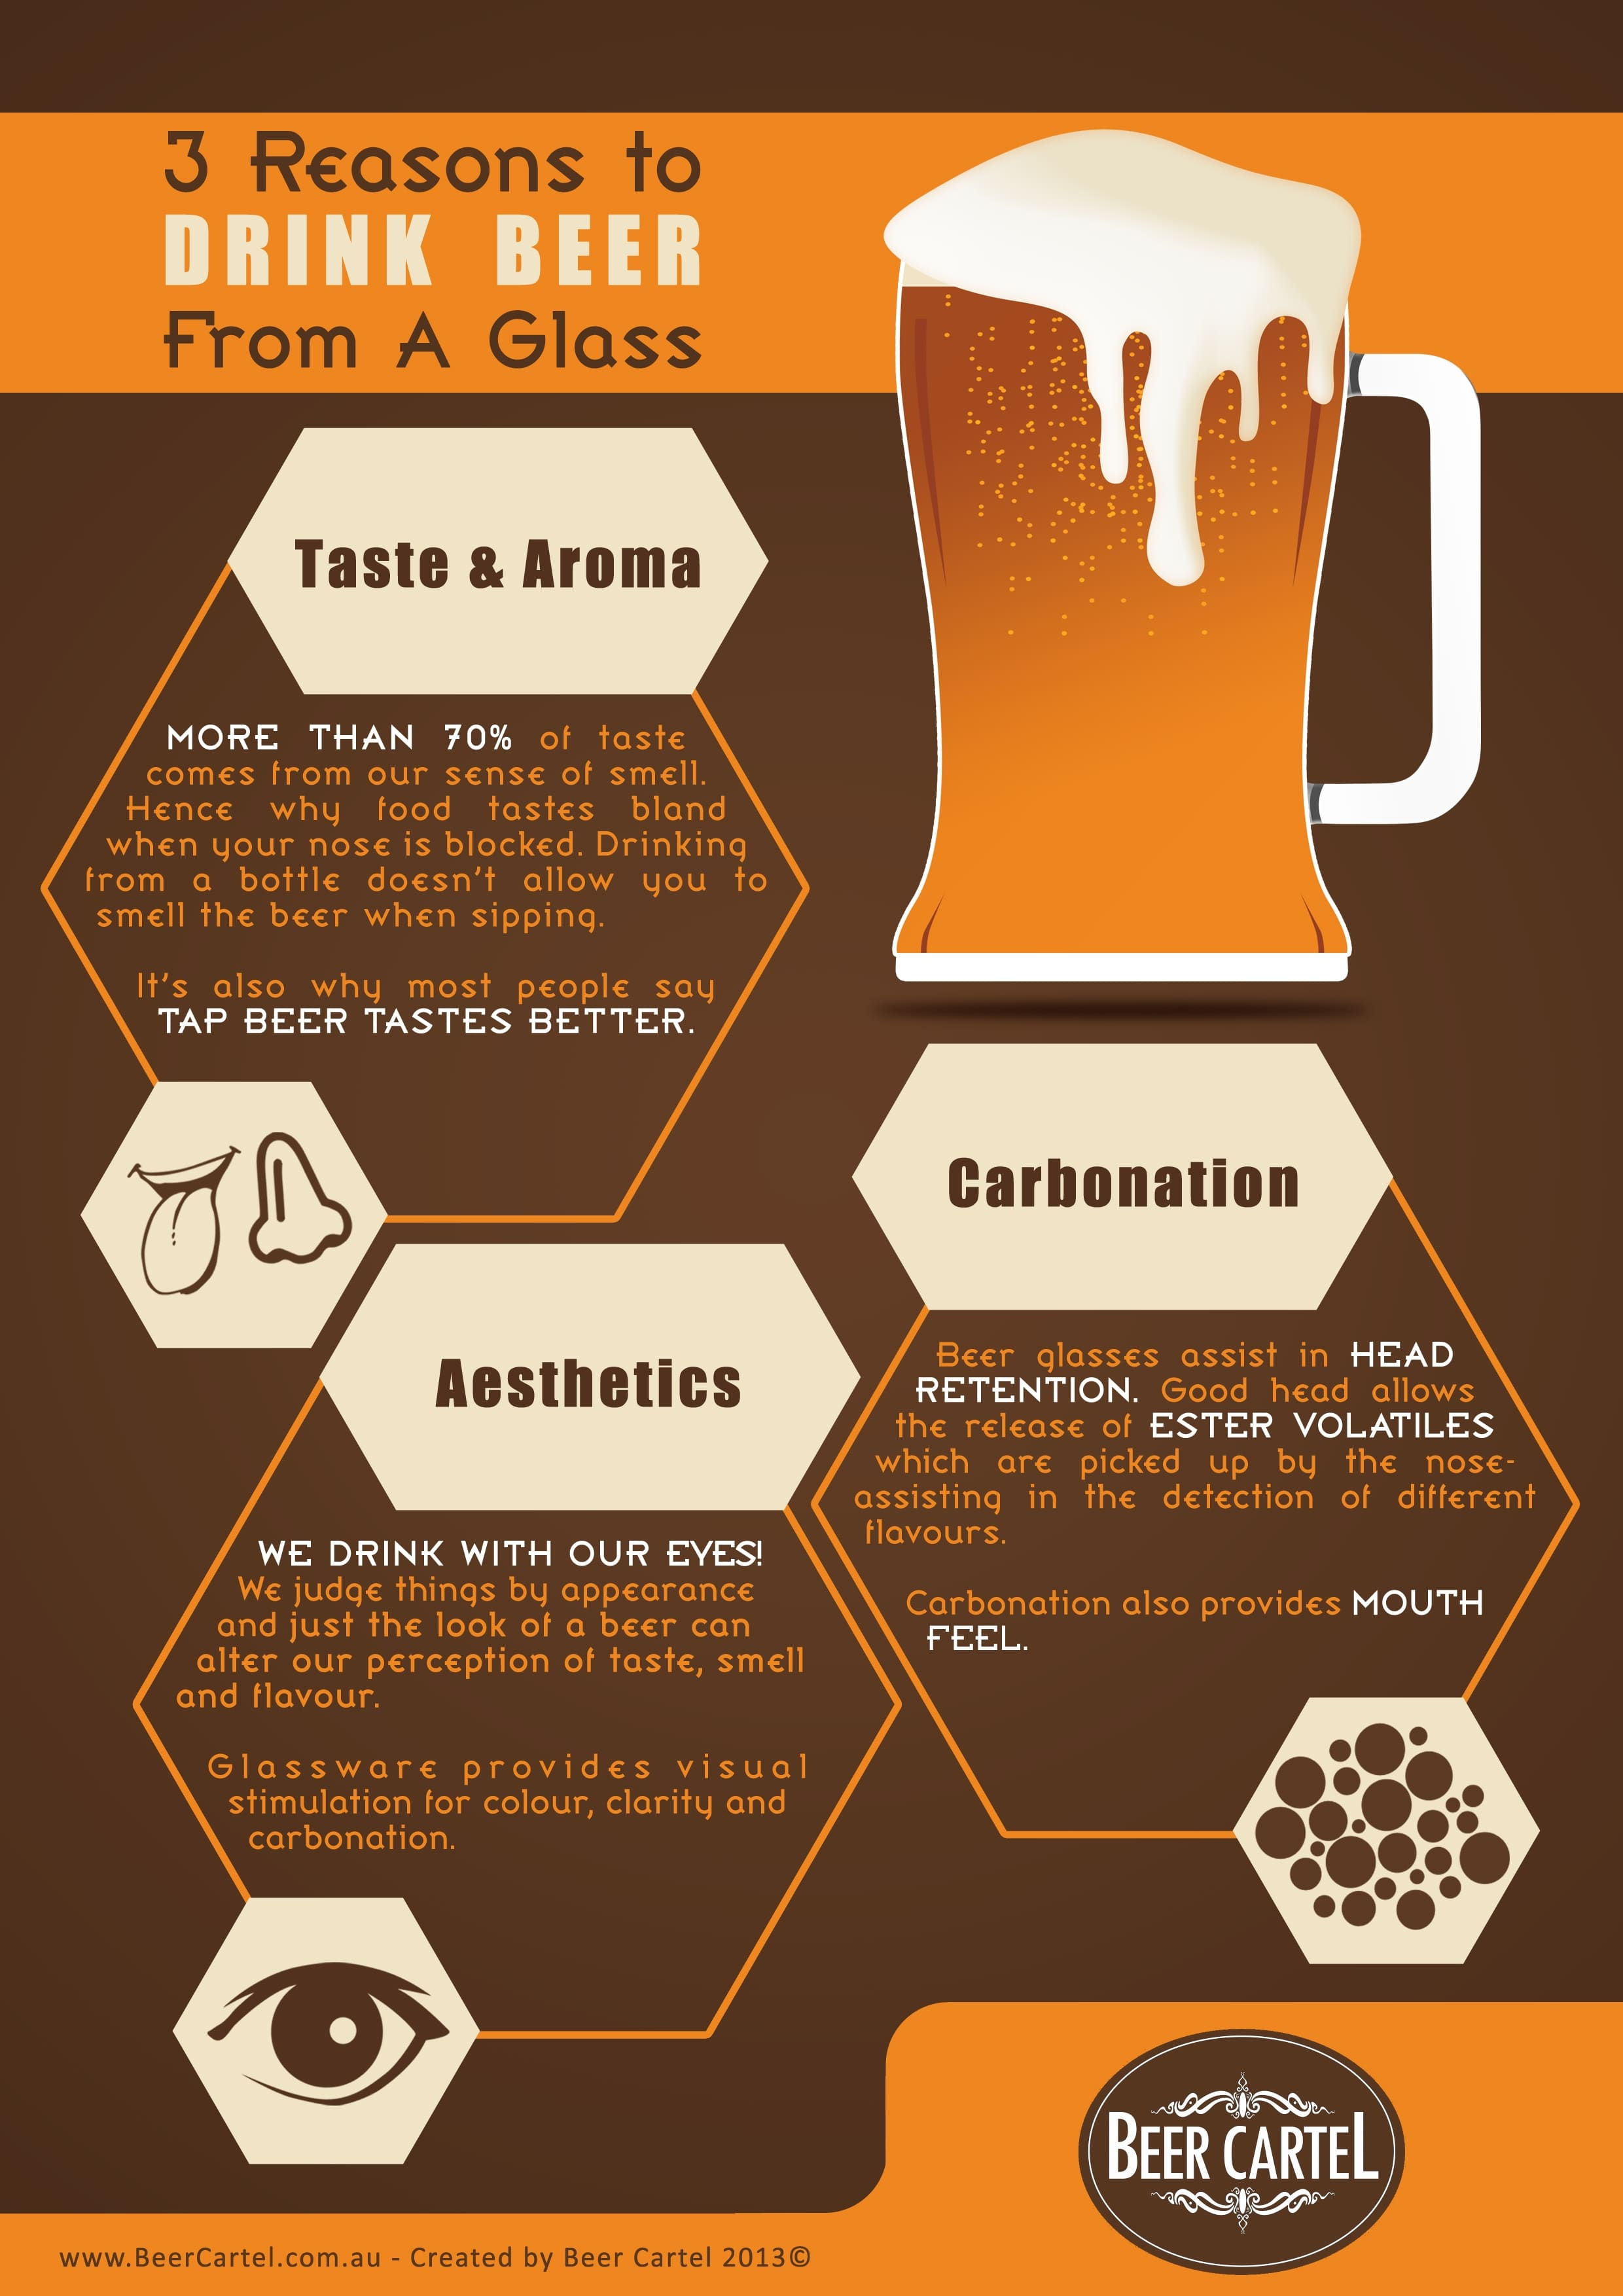 top-3-reasons-to-drink-beer-from-a-glass_520af08245302.jpg